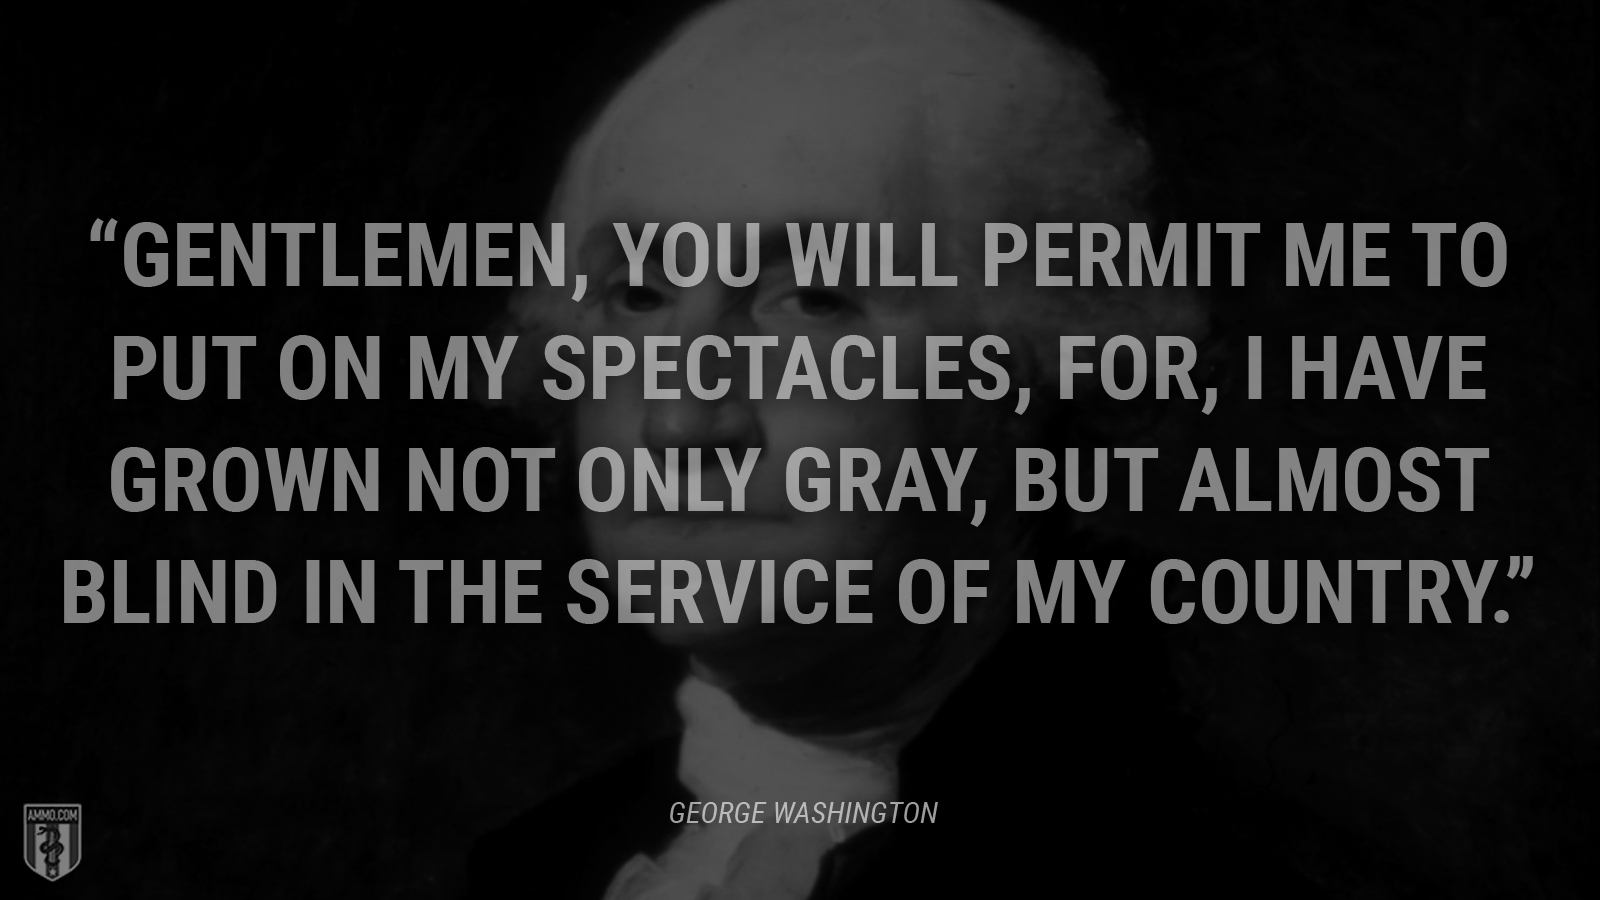 """Gentlemen, you will permit me to put on my spectacles, for, I have grown not only gray, but almost blind in the service of my country."" - George Washington"